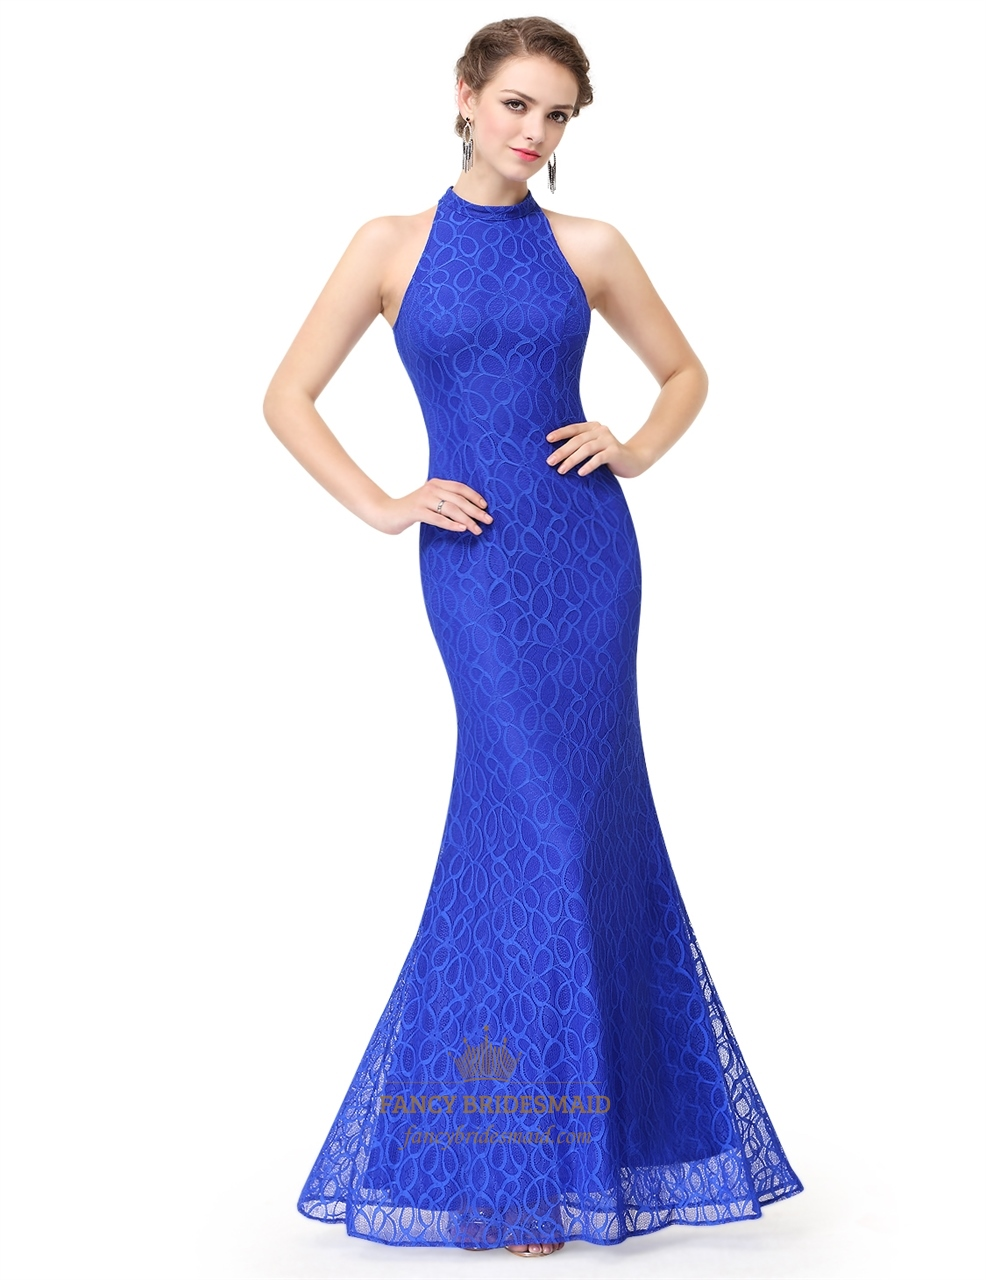 Royal blue halter mermaid sleeveless floor length evening dress fancy bridesmaid dresses for Mermaid halter wedding dresses